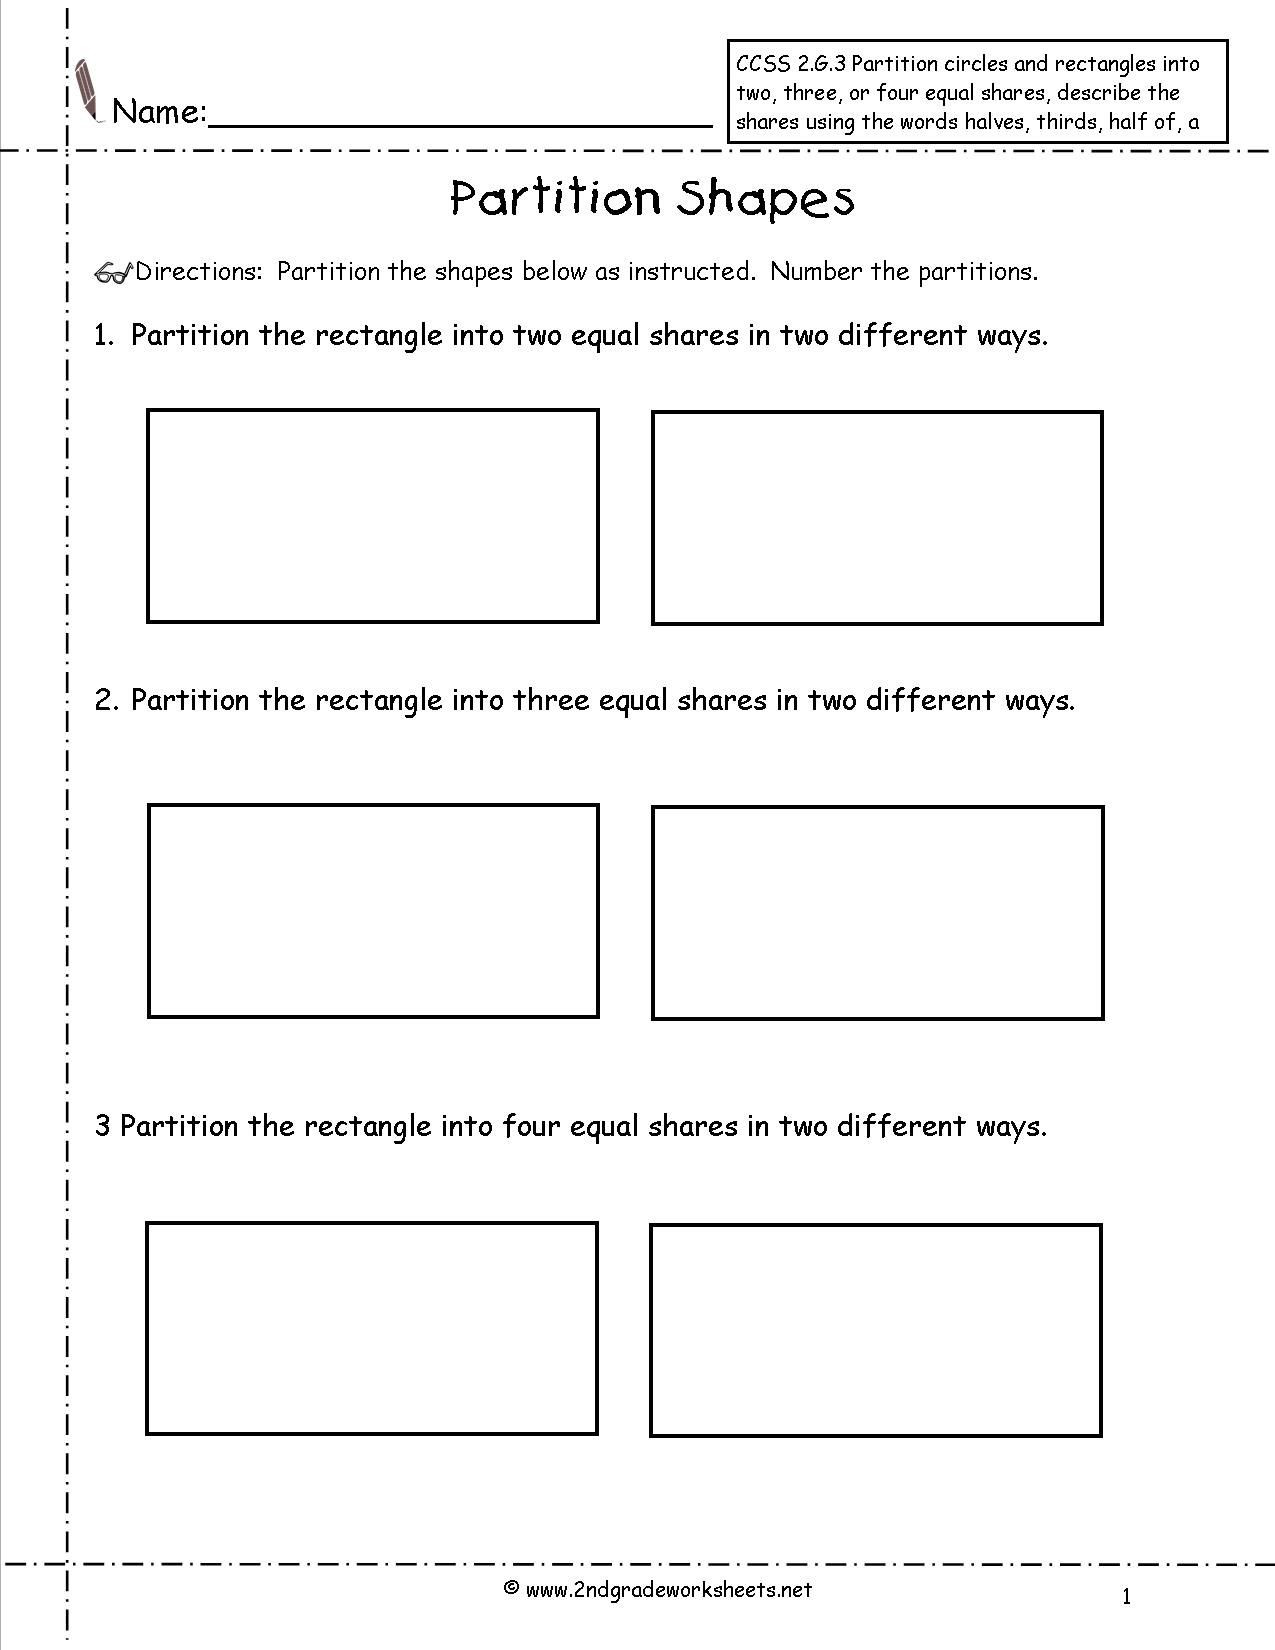 Second Grade Geometry Worksheets Ccss 2 G 3 Worksheets Partition Shapes